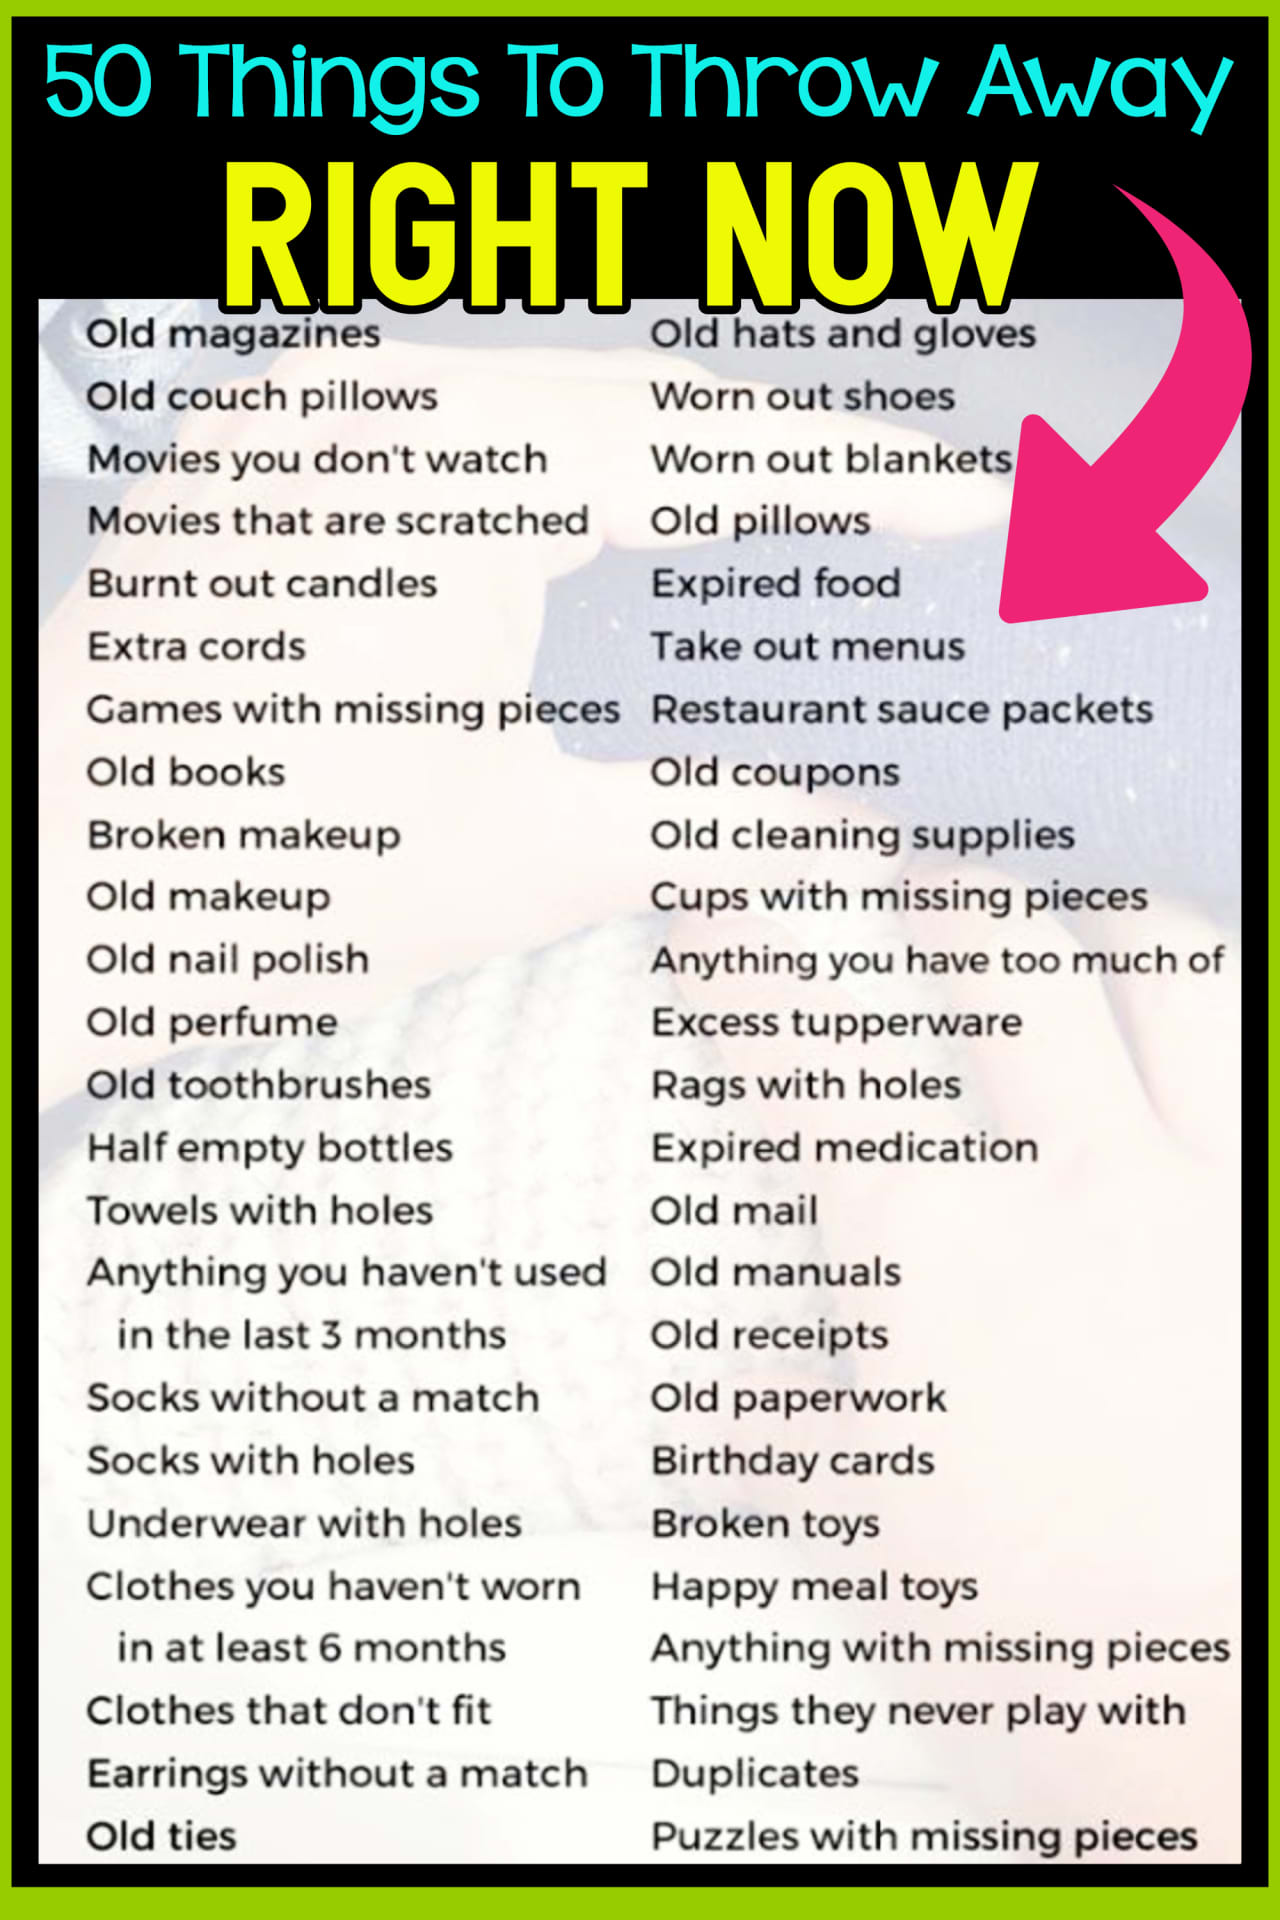 Trying to declutter and organize your home but feel SO overwhelmed?  Here's a simple decluttering checklist to get rid of the clutter.  UNcluttering your clutter is THE best cheap organizing idea ever! You can't organize like a pro until you DECLUTTER your home.